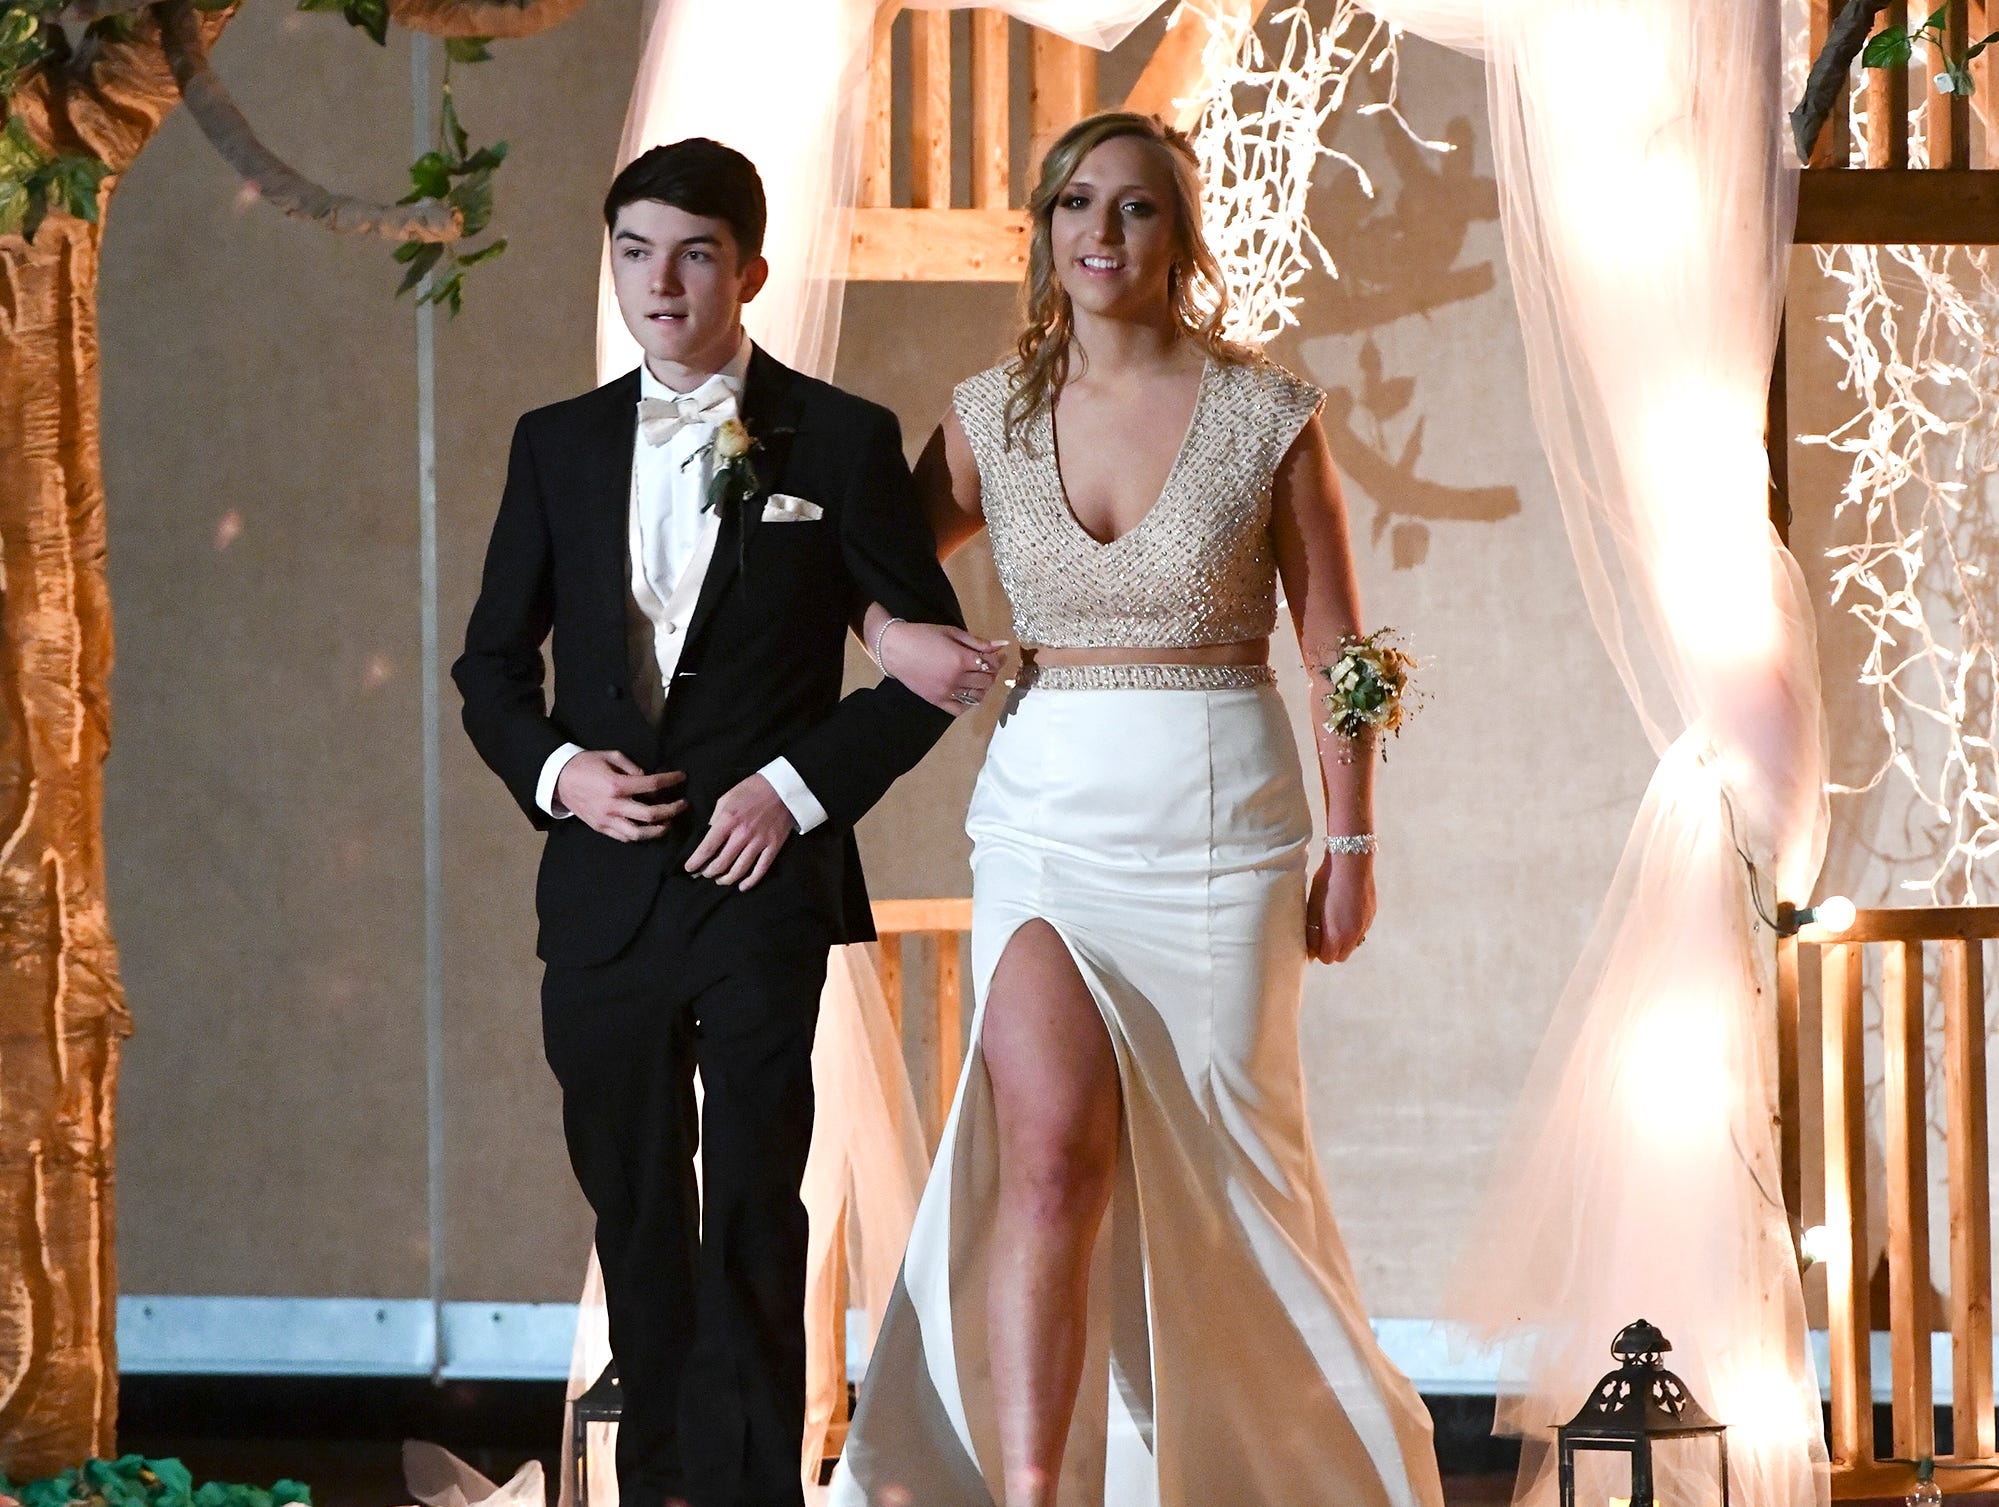 Couples take part in prom grand march Saturday, April 27, at Tech High School in St. Cloud.